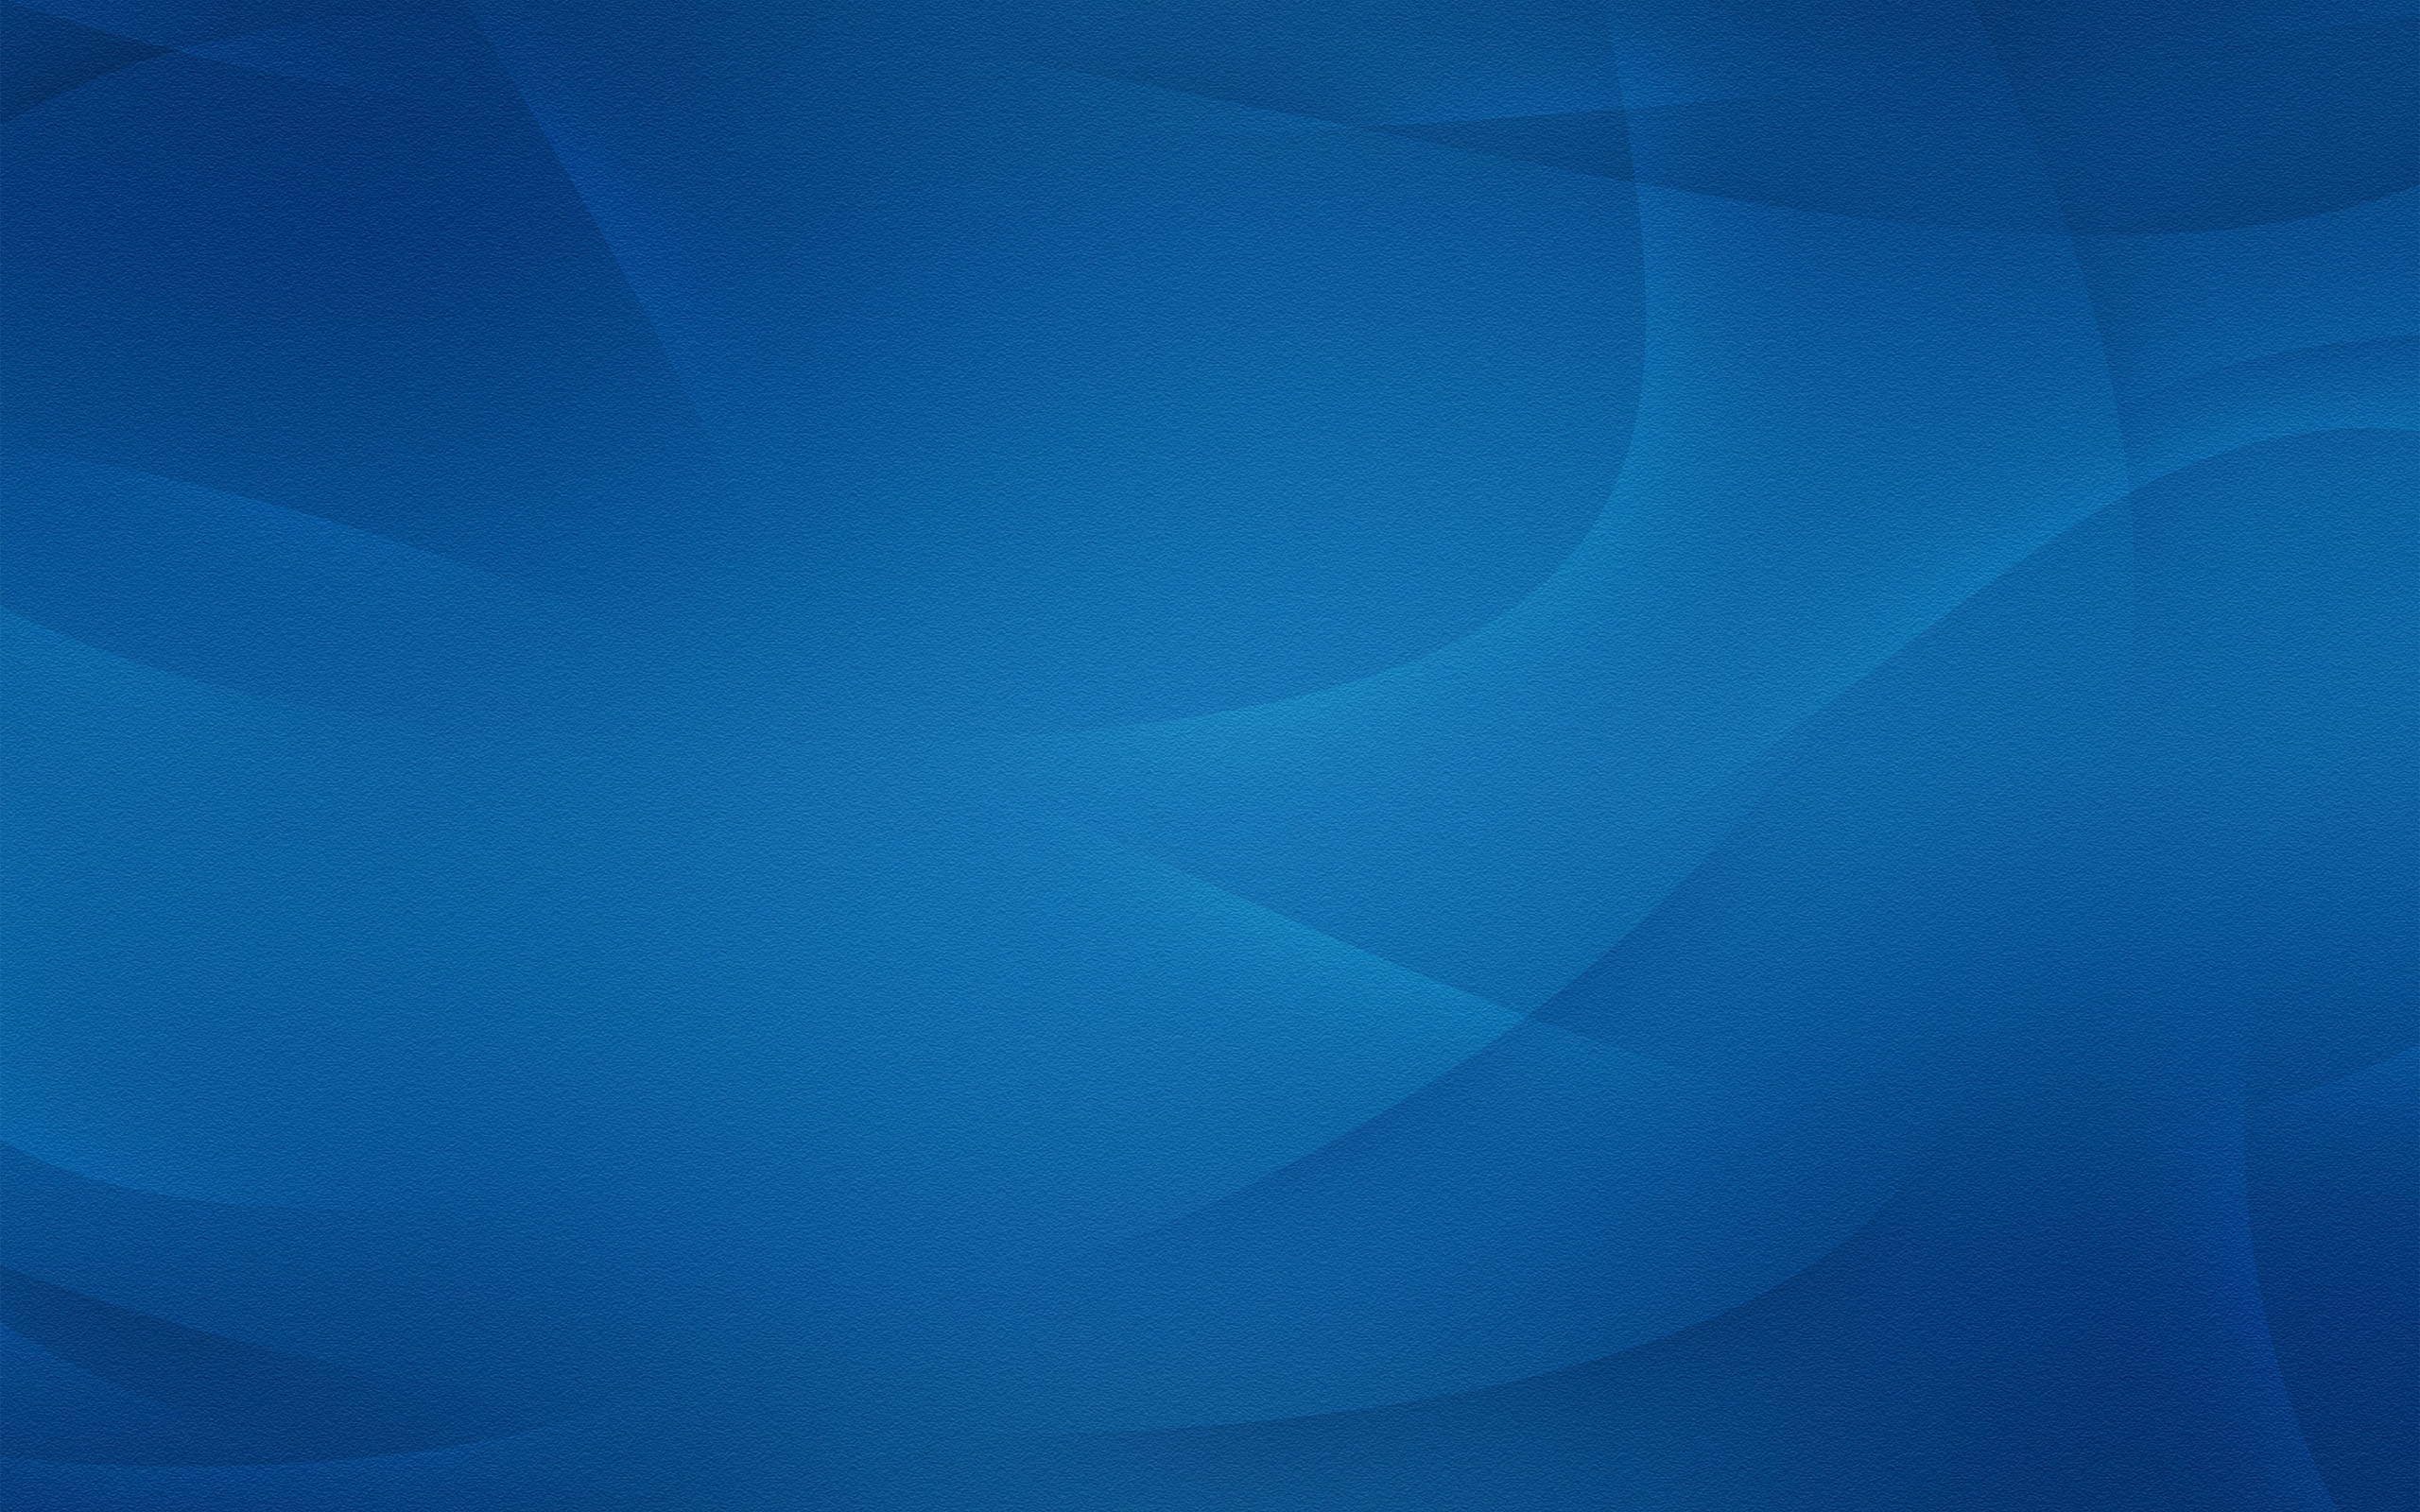 mac blue wallpaper - wallpapersafari